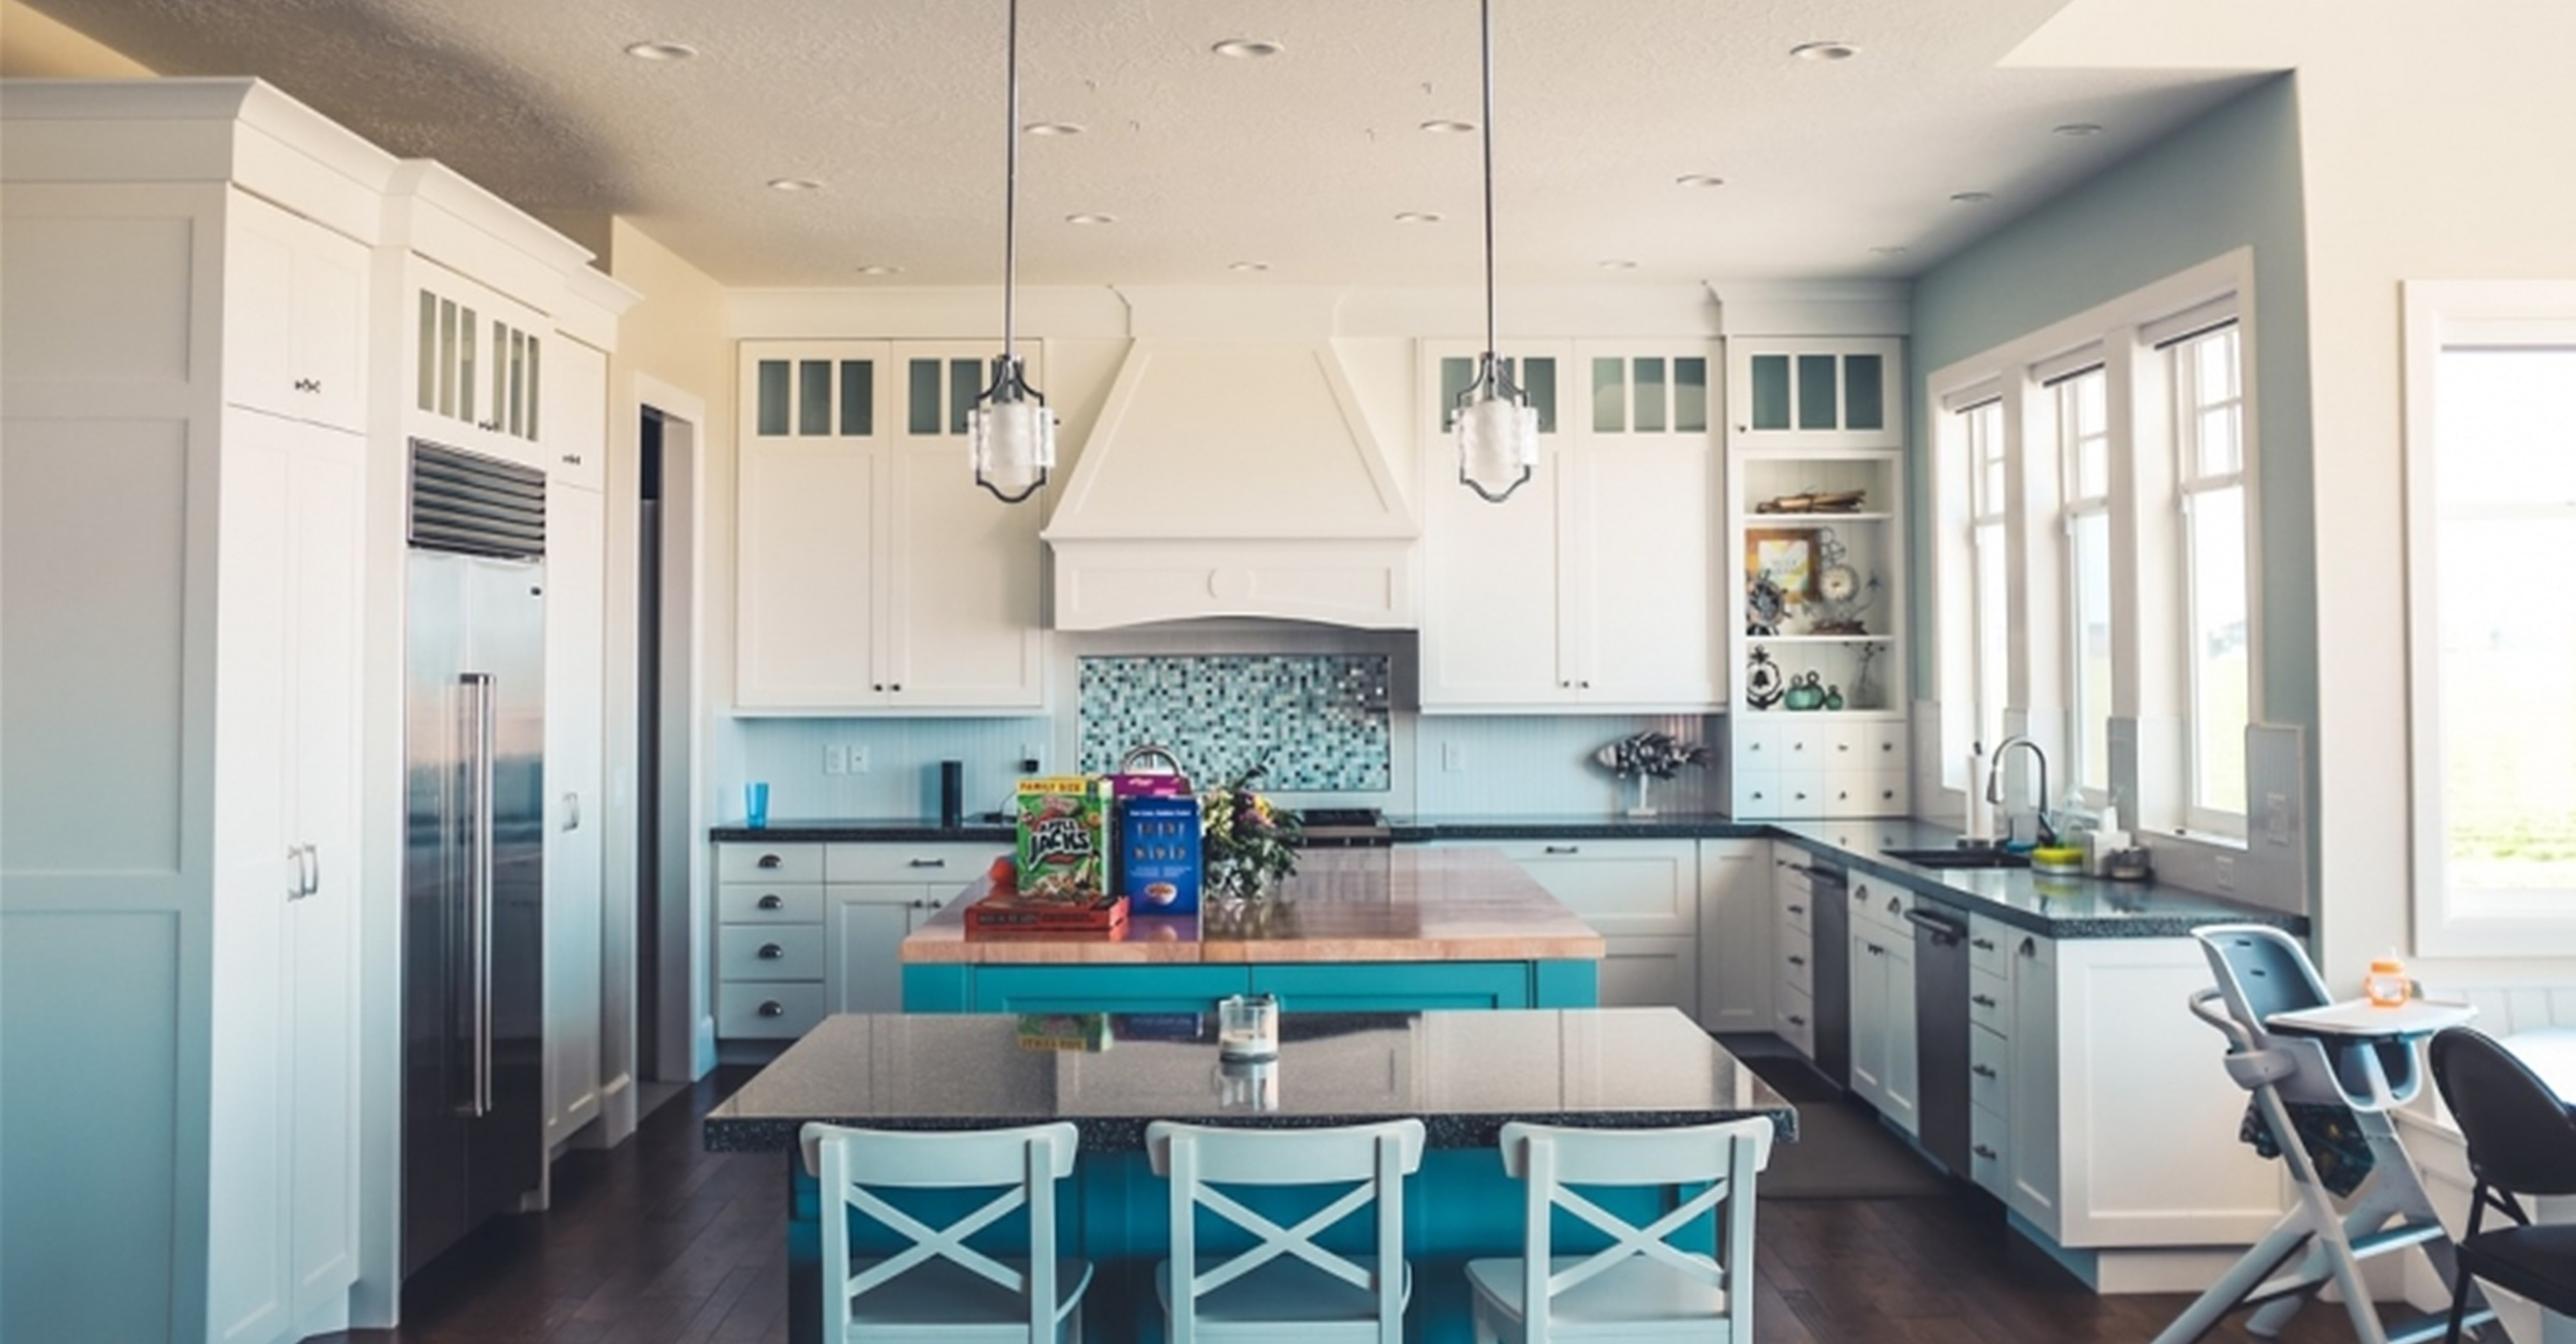 Achieve an Amazing Kitchen with These Designer Tips